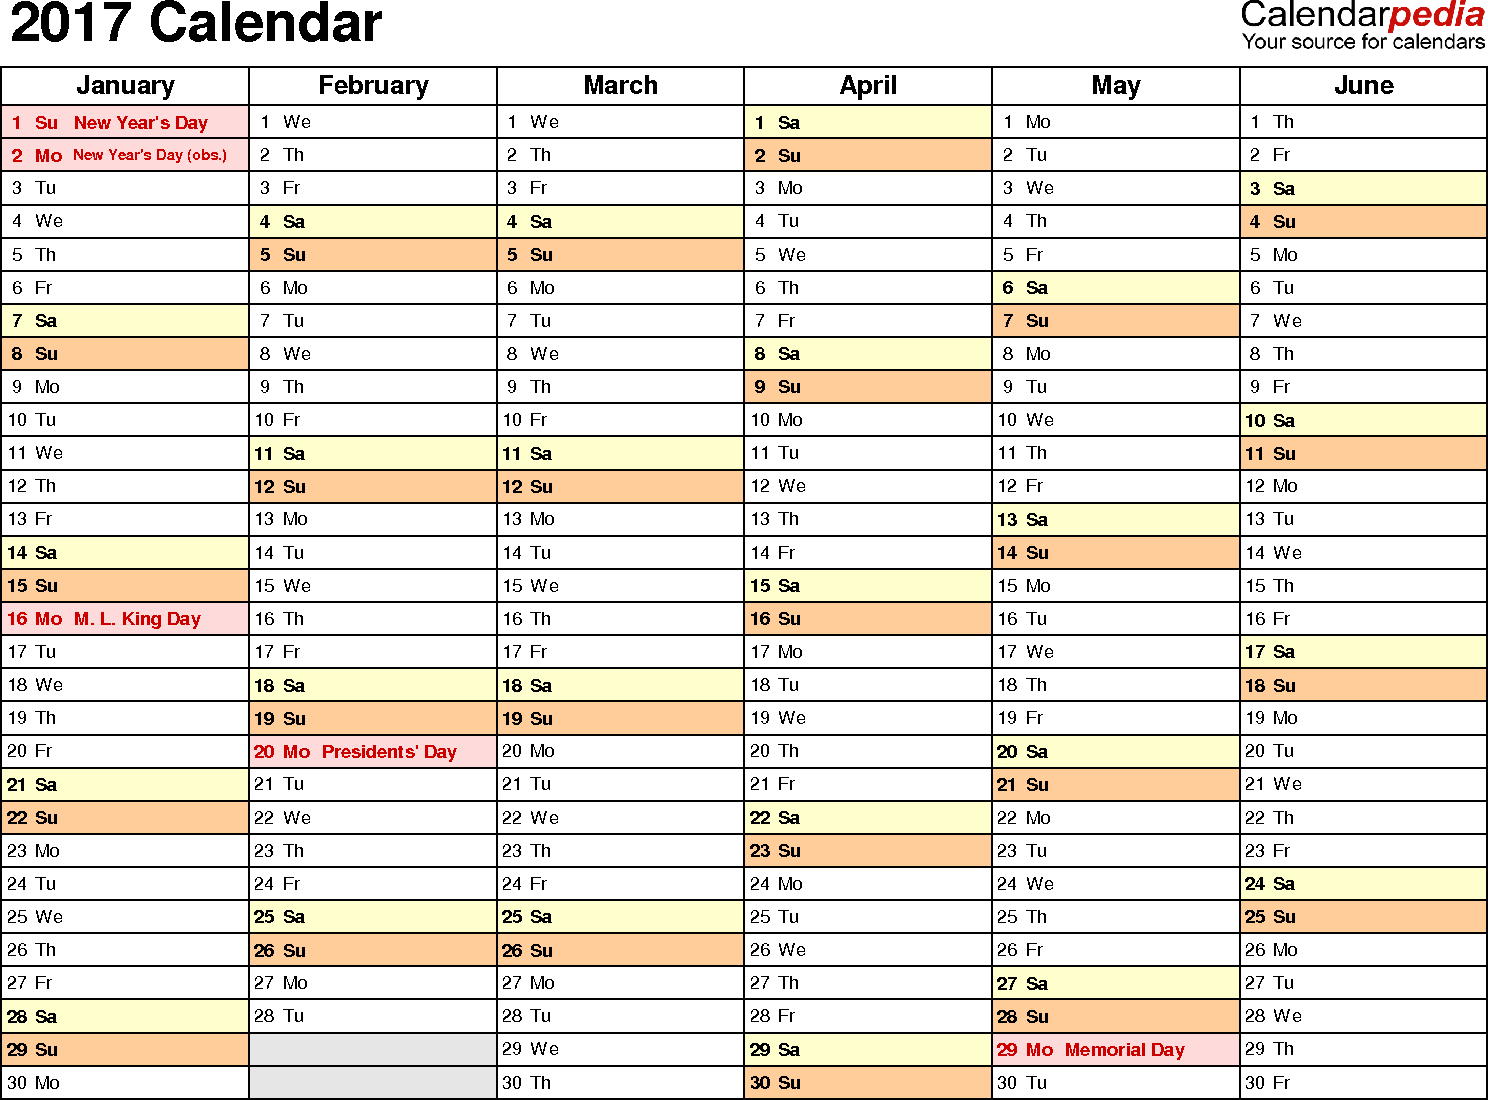 Ediblewildsus  Splendid  Calendar  Download  Free Printable Excel Templates Xls With Interesting Template   Calendar For Excel Months Horizontally  Pages Landscape Orientation With Astonishing Dashboard Reporting With Excel Also Excel Sort Dates In Addition Excel If Statement For Text And Password Protect Excel  As Well As Excel Chart Date Range Additionally Spc Charts In Excel From Calendarpediacom With Ediblewildsus  Interesting  Calendar  Download  Free Printable Excel Templates Xls With Astonishing Template   Calendar For Excel Months Horizontally  Pages Landscape Orientation And Splendid Dashboard Reporting With Excel Also Excel Sort Dates In Addition Excel If Statement For Text From Calendarpediacom